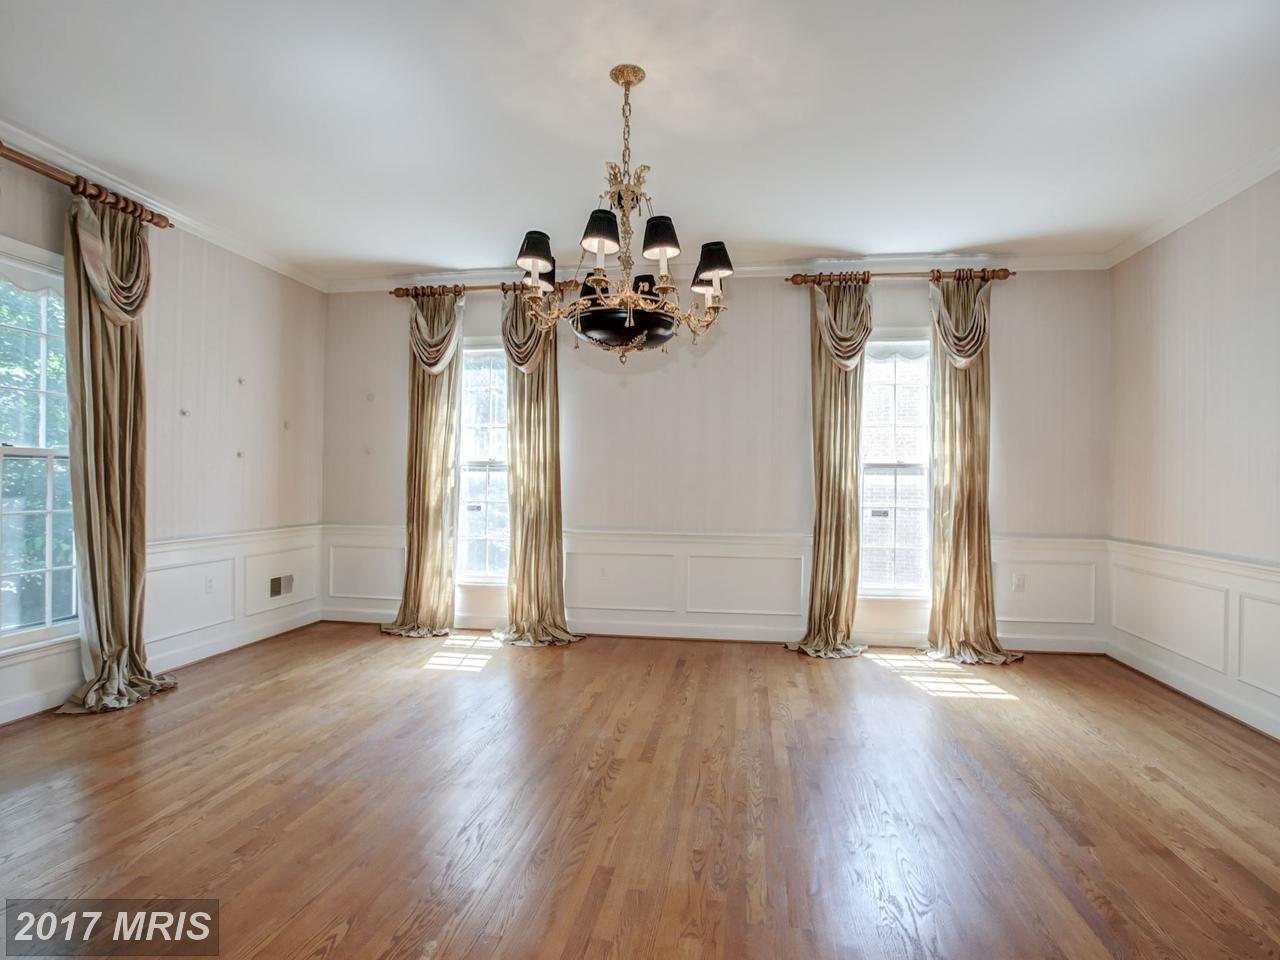 Additional photo for property listing at Colonial, Detached - WASHINGTON, DC 5149 YUMA ST NW Washington, Columbia Bölgesi,20016 Amerika Birleşik Devletleri